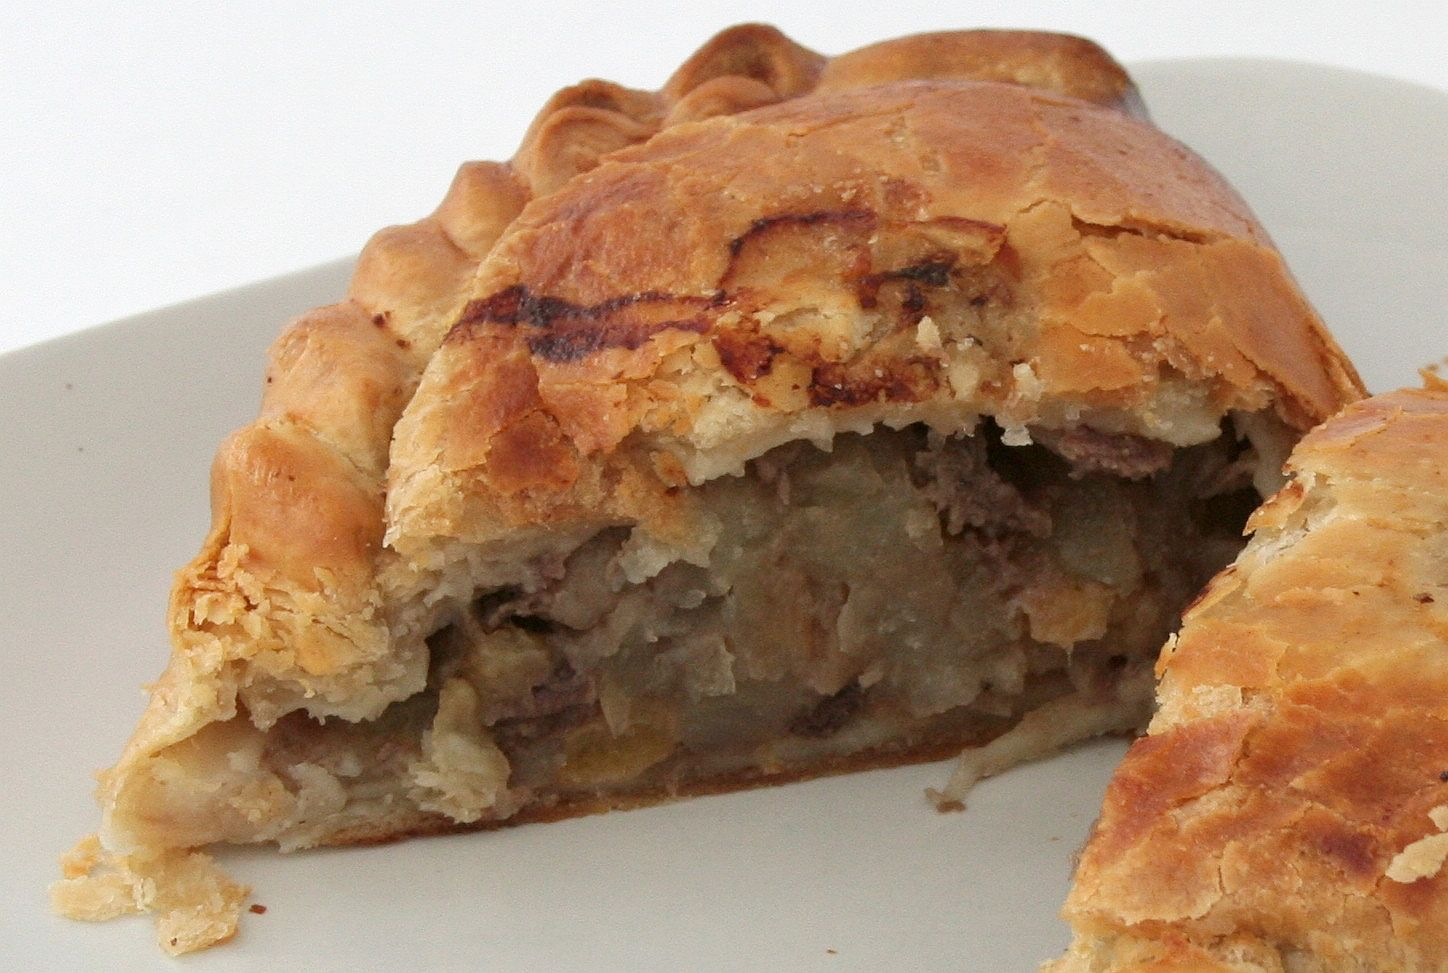 A Cornish pasty